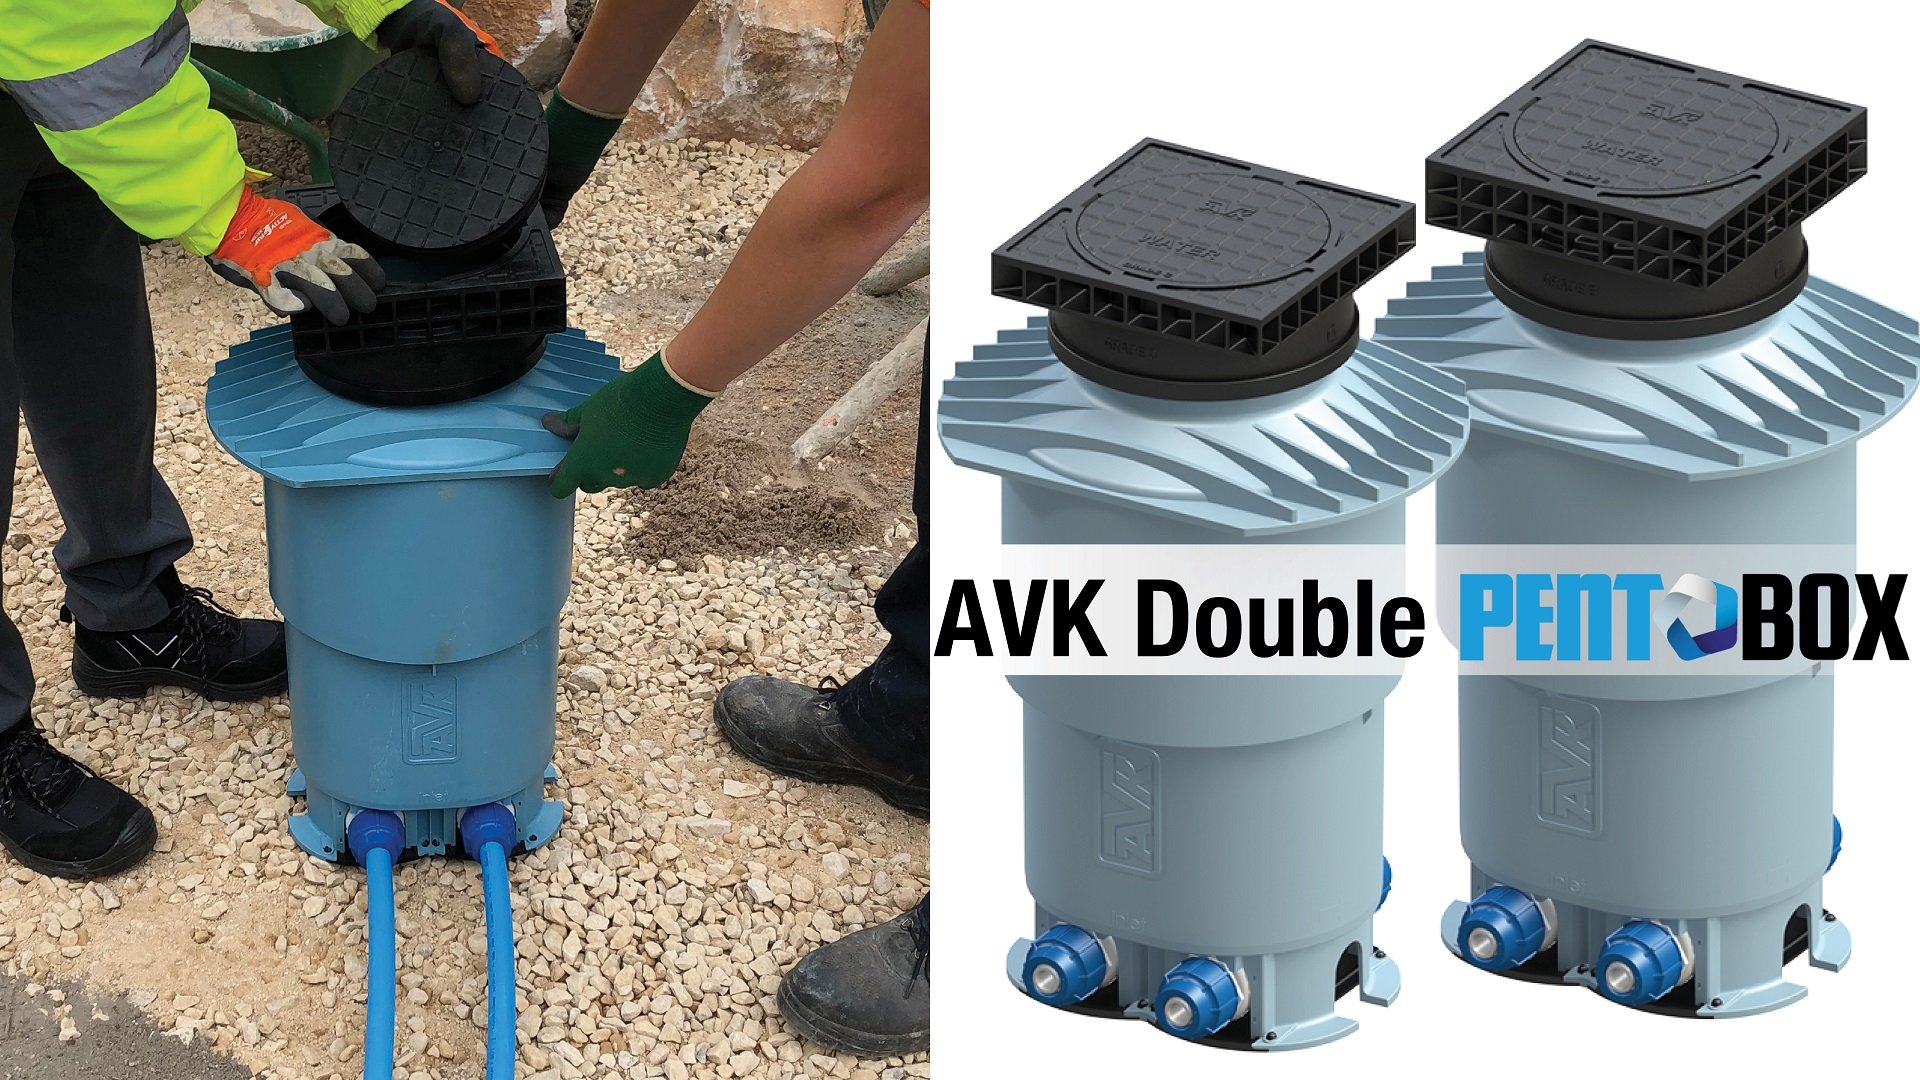 AVK Double Pentobox Water mains to meter